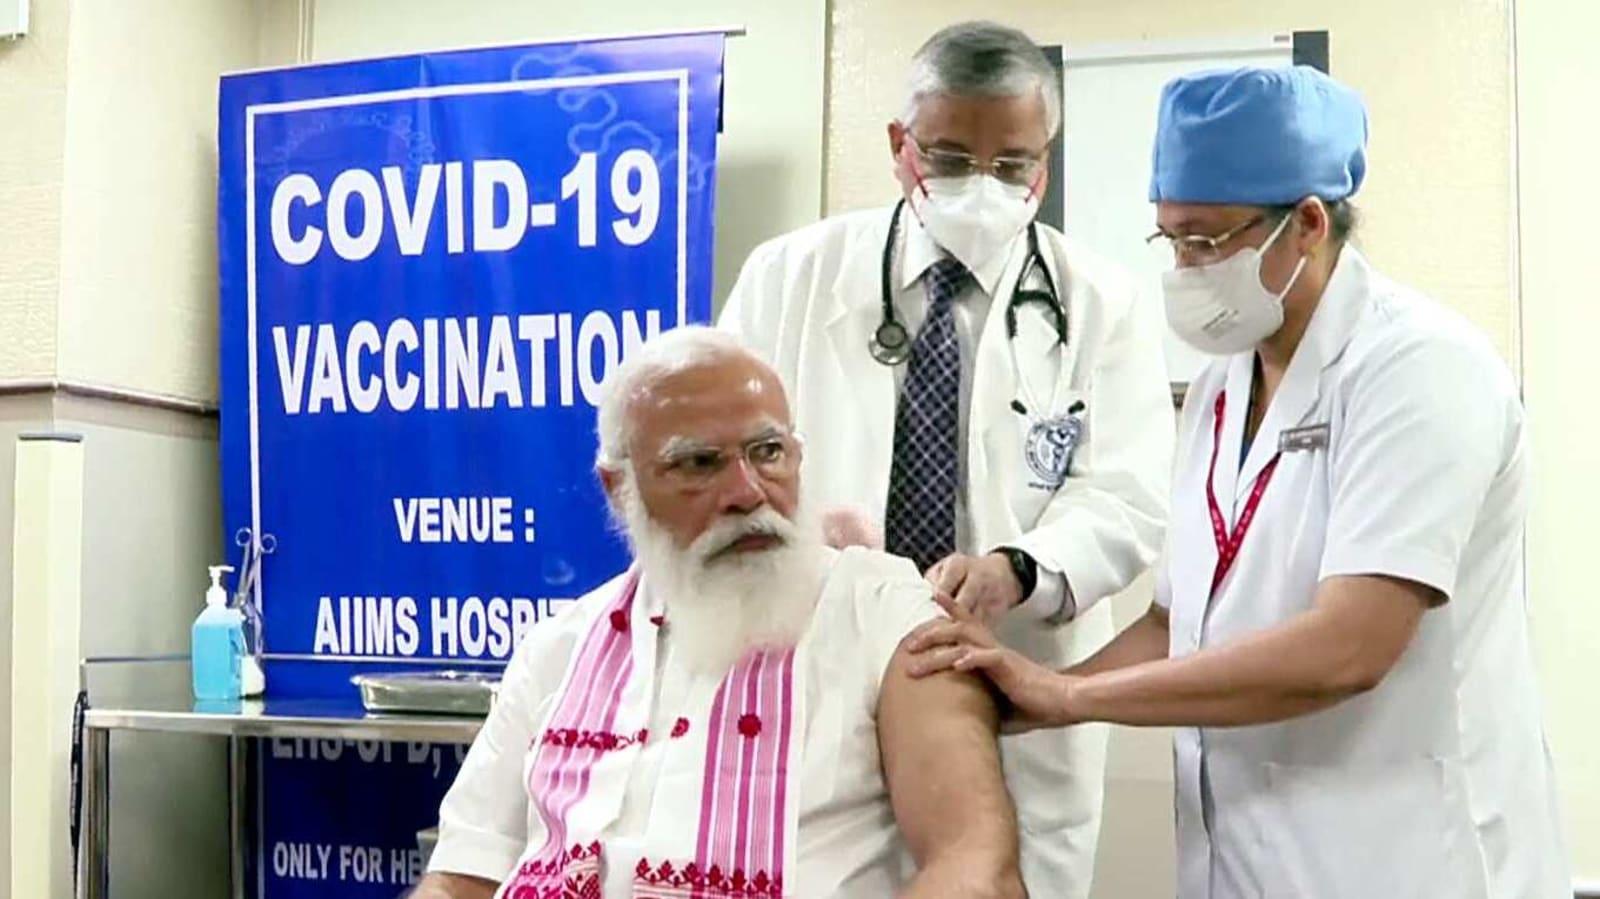 PM Modi gets first shot as second leg of inoculation drive begins   Latest News India - Hindustan Times